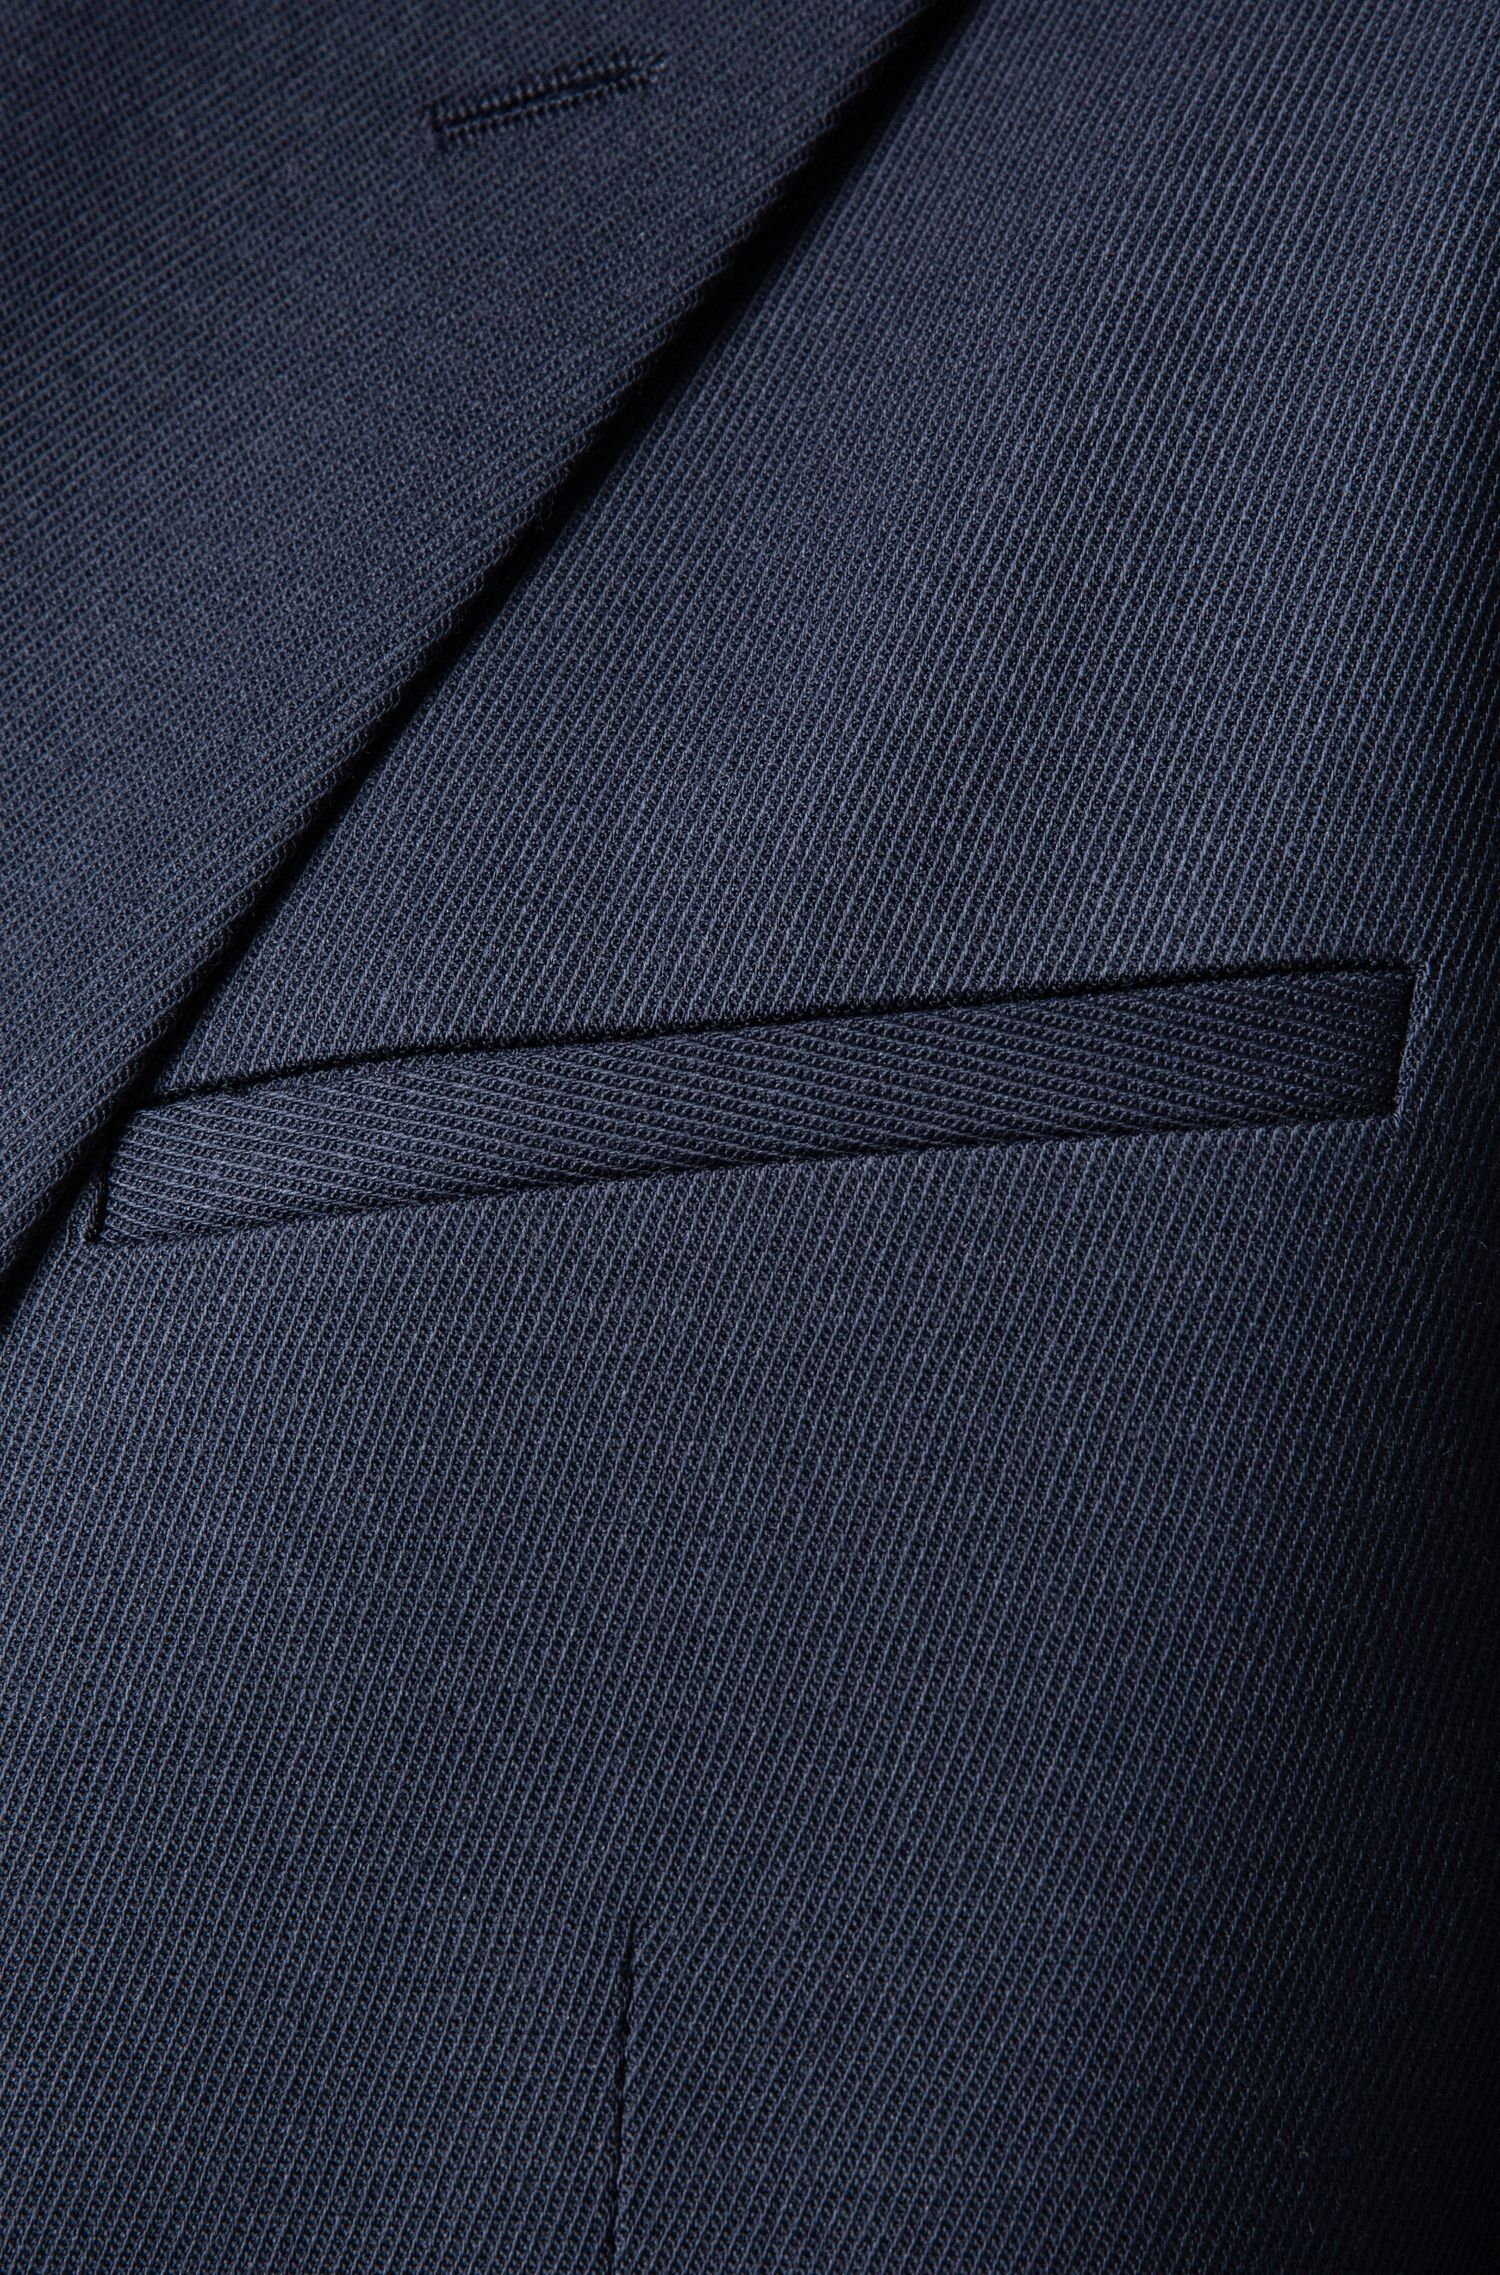 Oversized-fit double-breasted suit in mixed wools, Blue